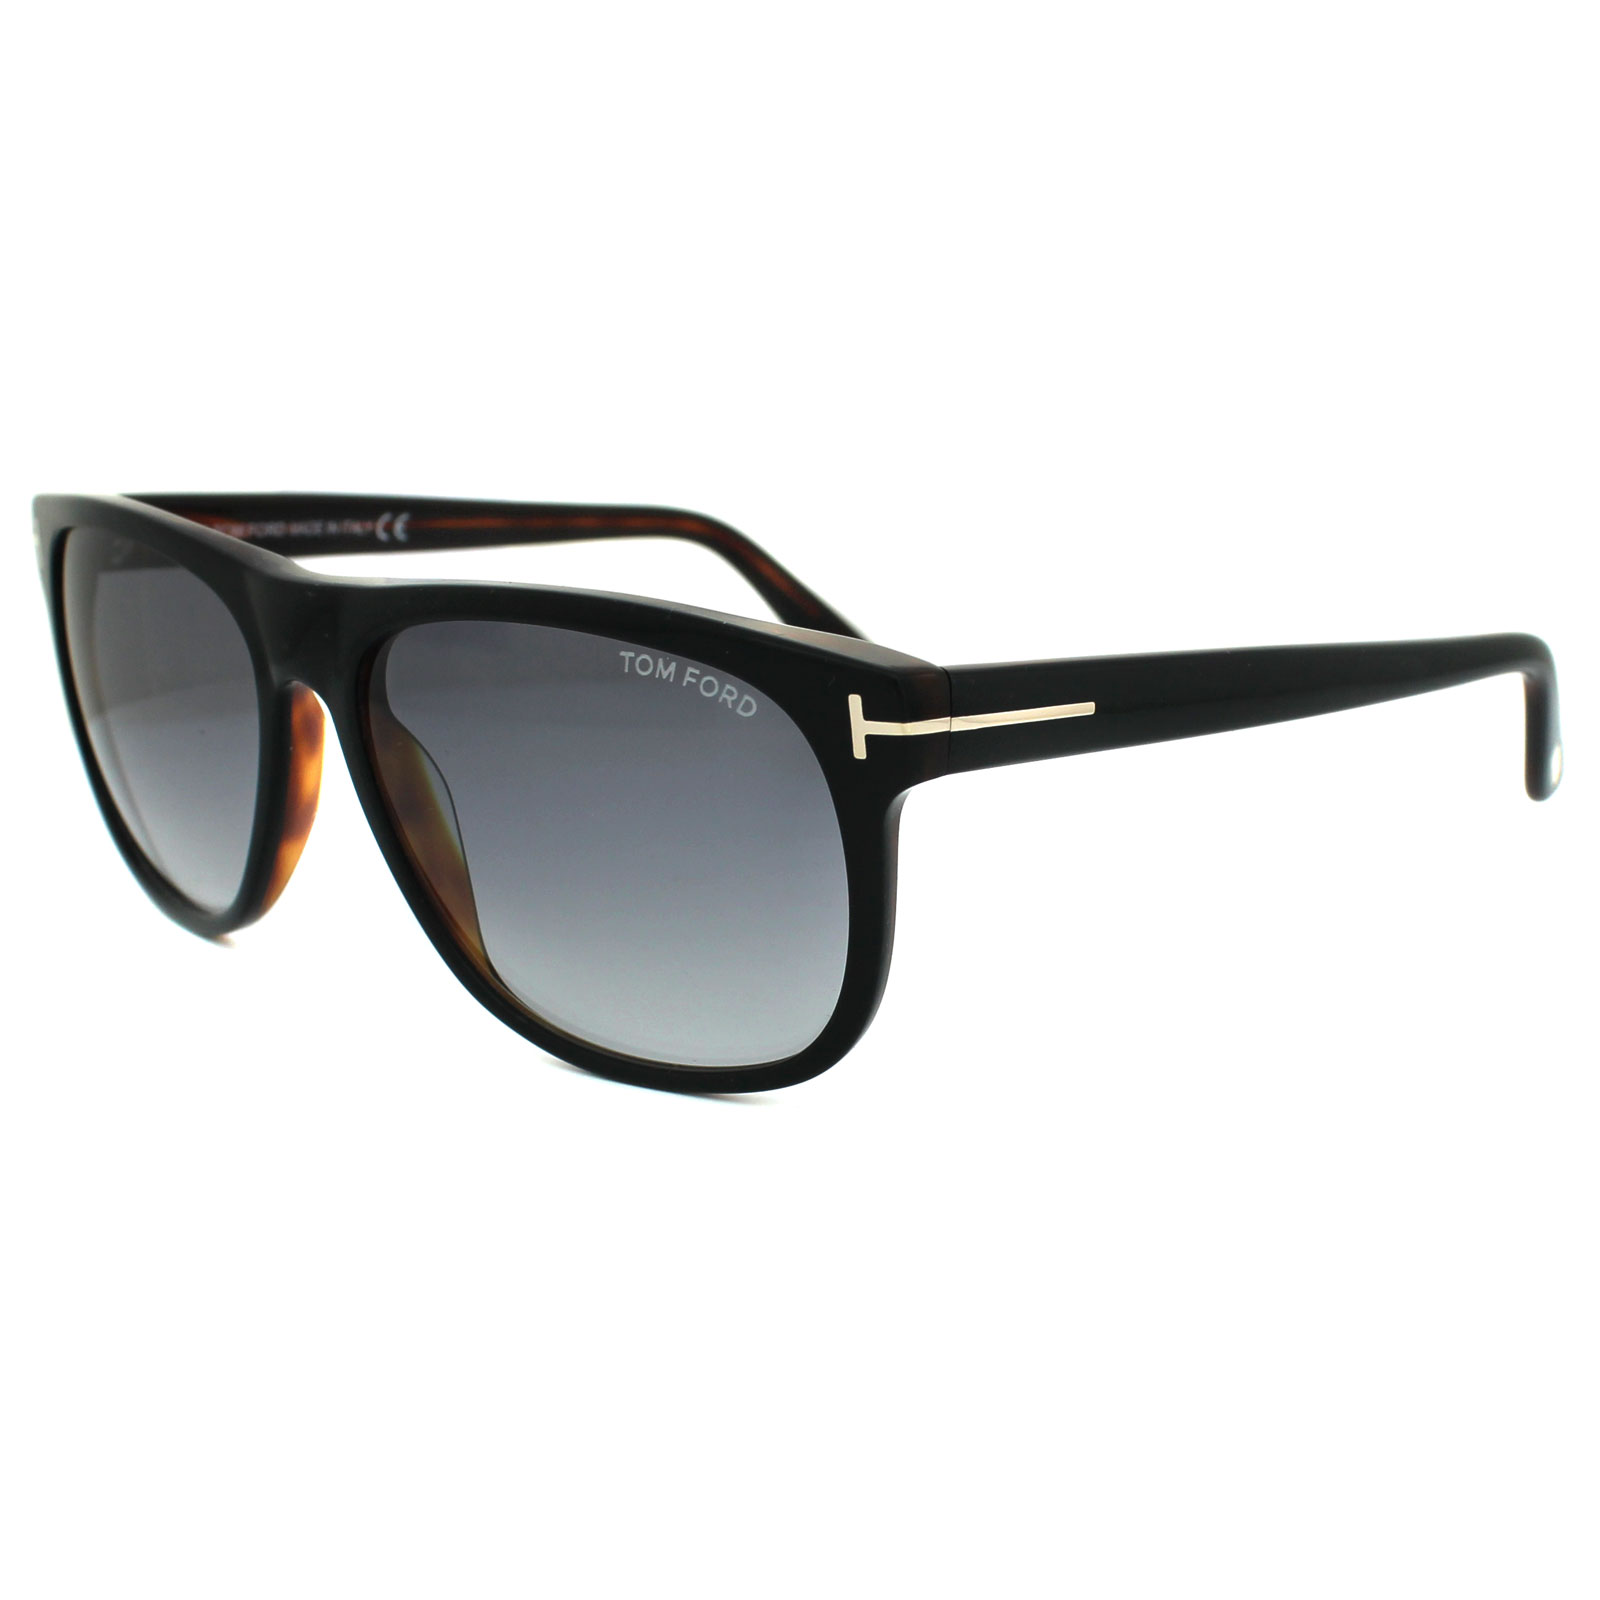 408b73ca5a79 Sentinel Tom Ford Sunglasses 0236 Olivier 05B Black   Brown Smoke Grey  Gradient